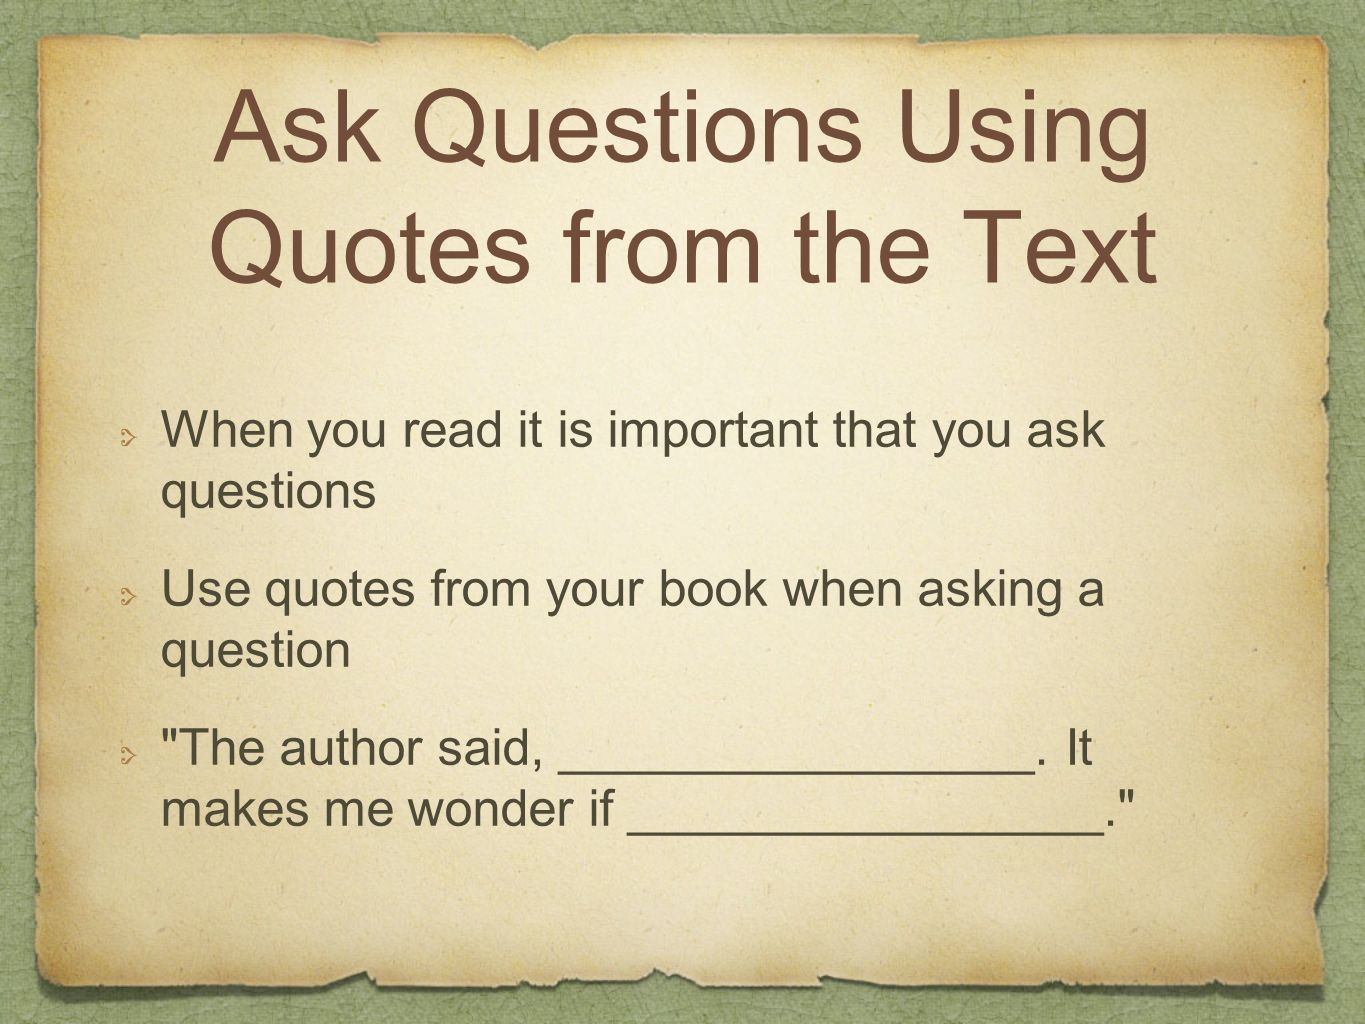 Ask Questions Using Quotes from the Text When you read it is important that you ask questions Use quotes from your book when asking a question